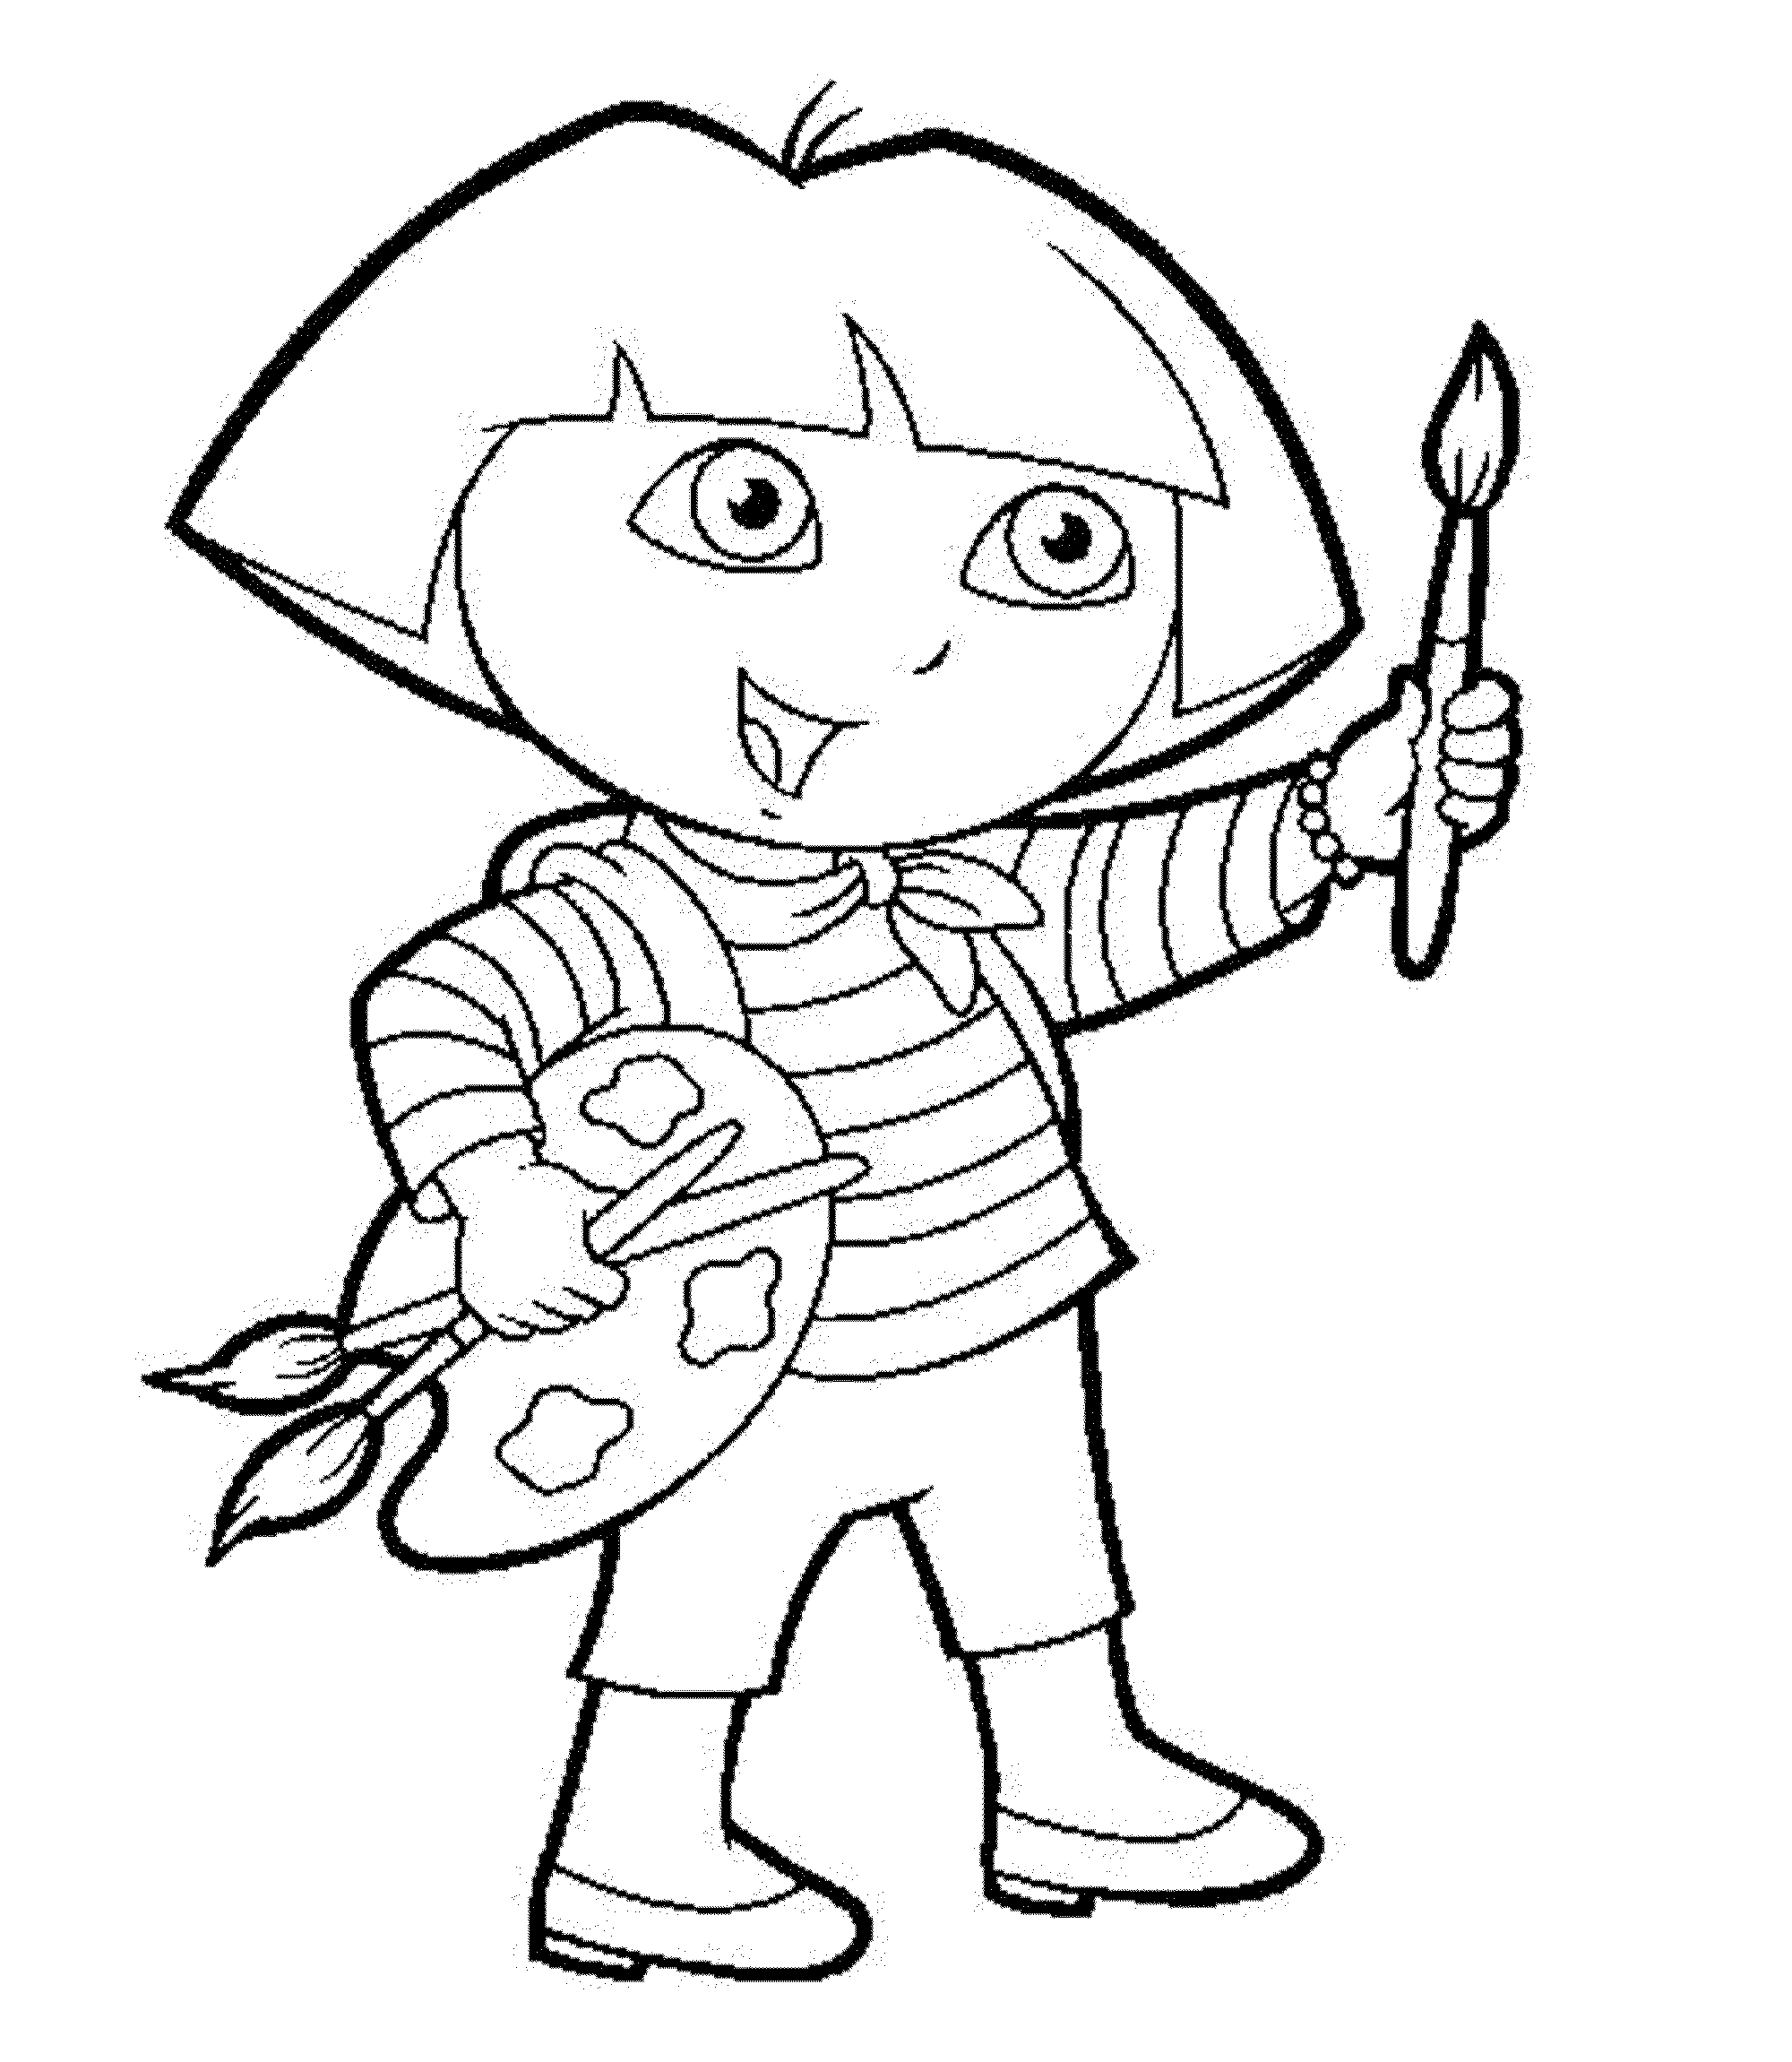 dora painting pictures free printable dora the explorer coloring pages for kids dora painting pictures